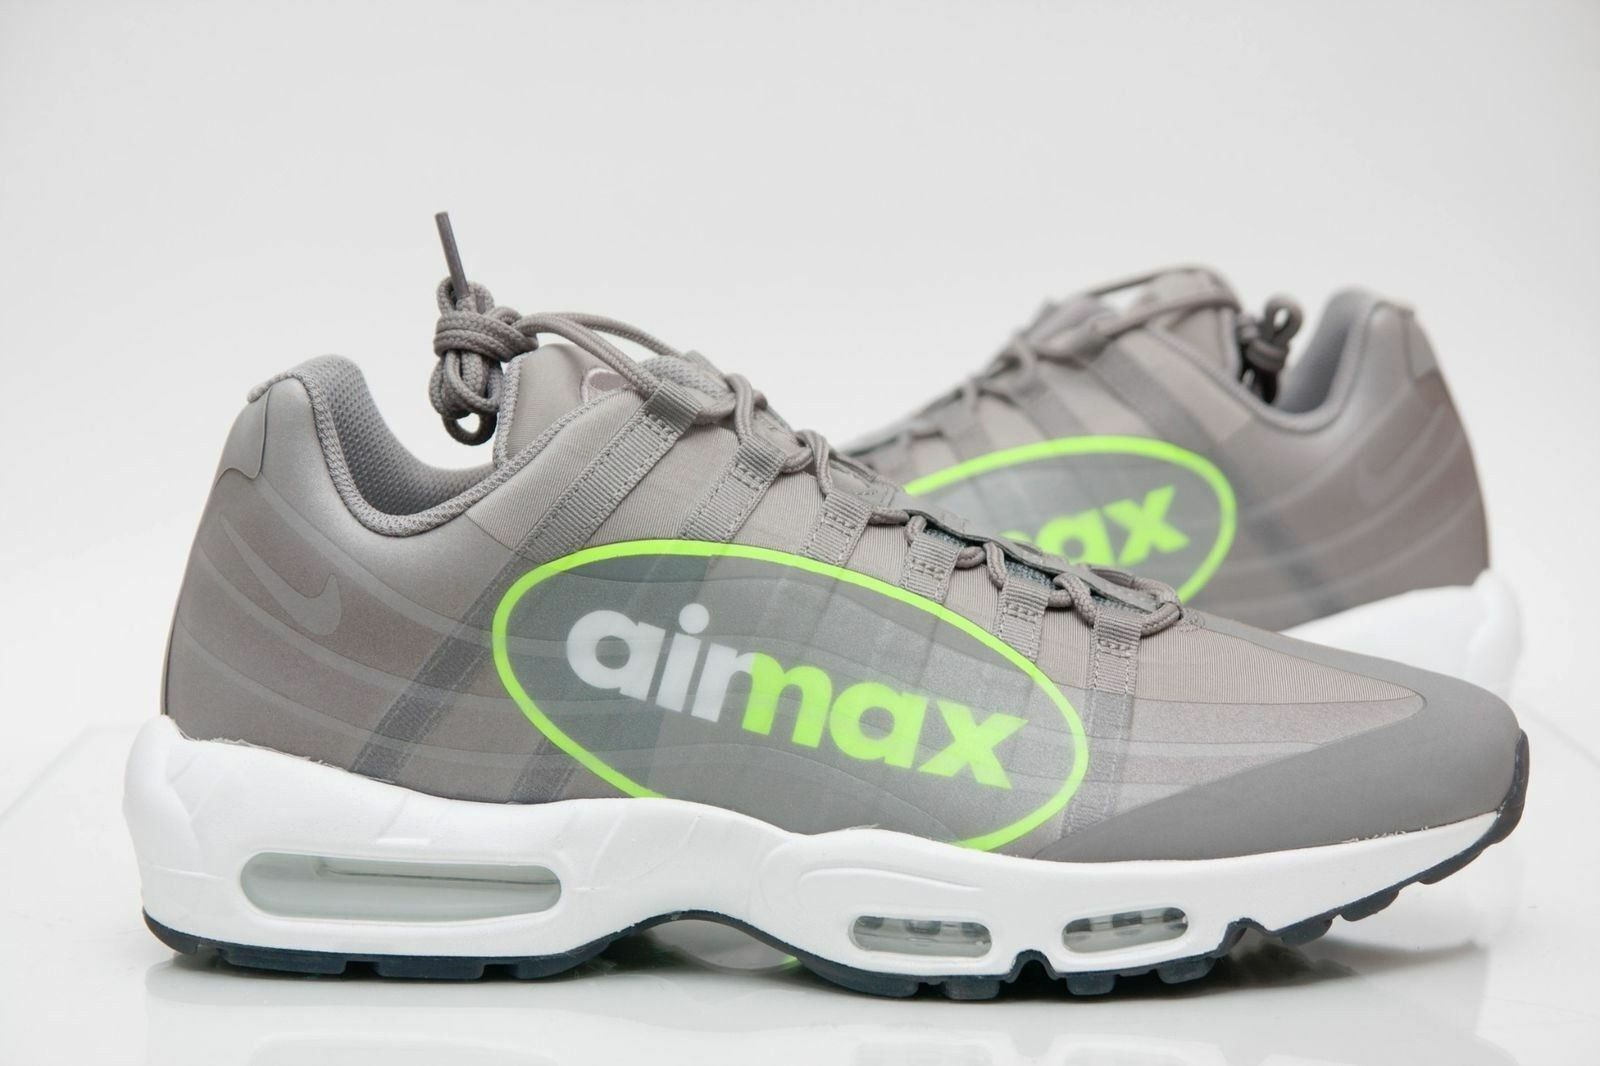 Homme Nike Air Max NS 95 Big Logo NS Max GPX Baskets-Taille UK 10-BNWB-ENVOI GRATUIT a3fb67